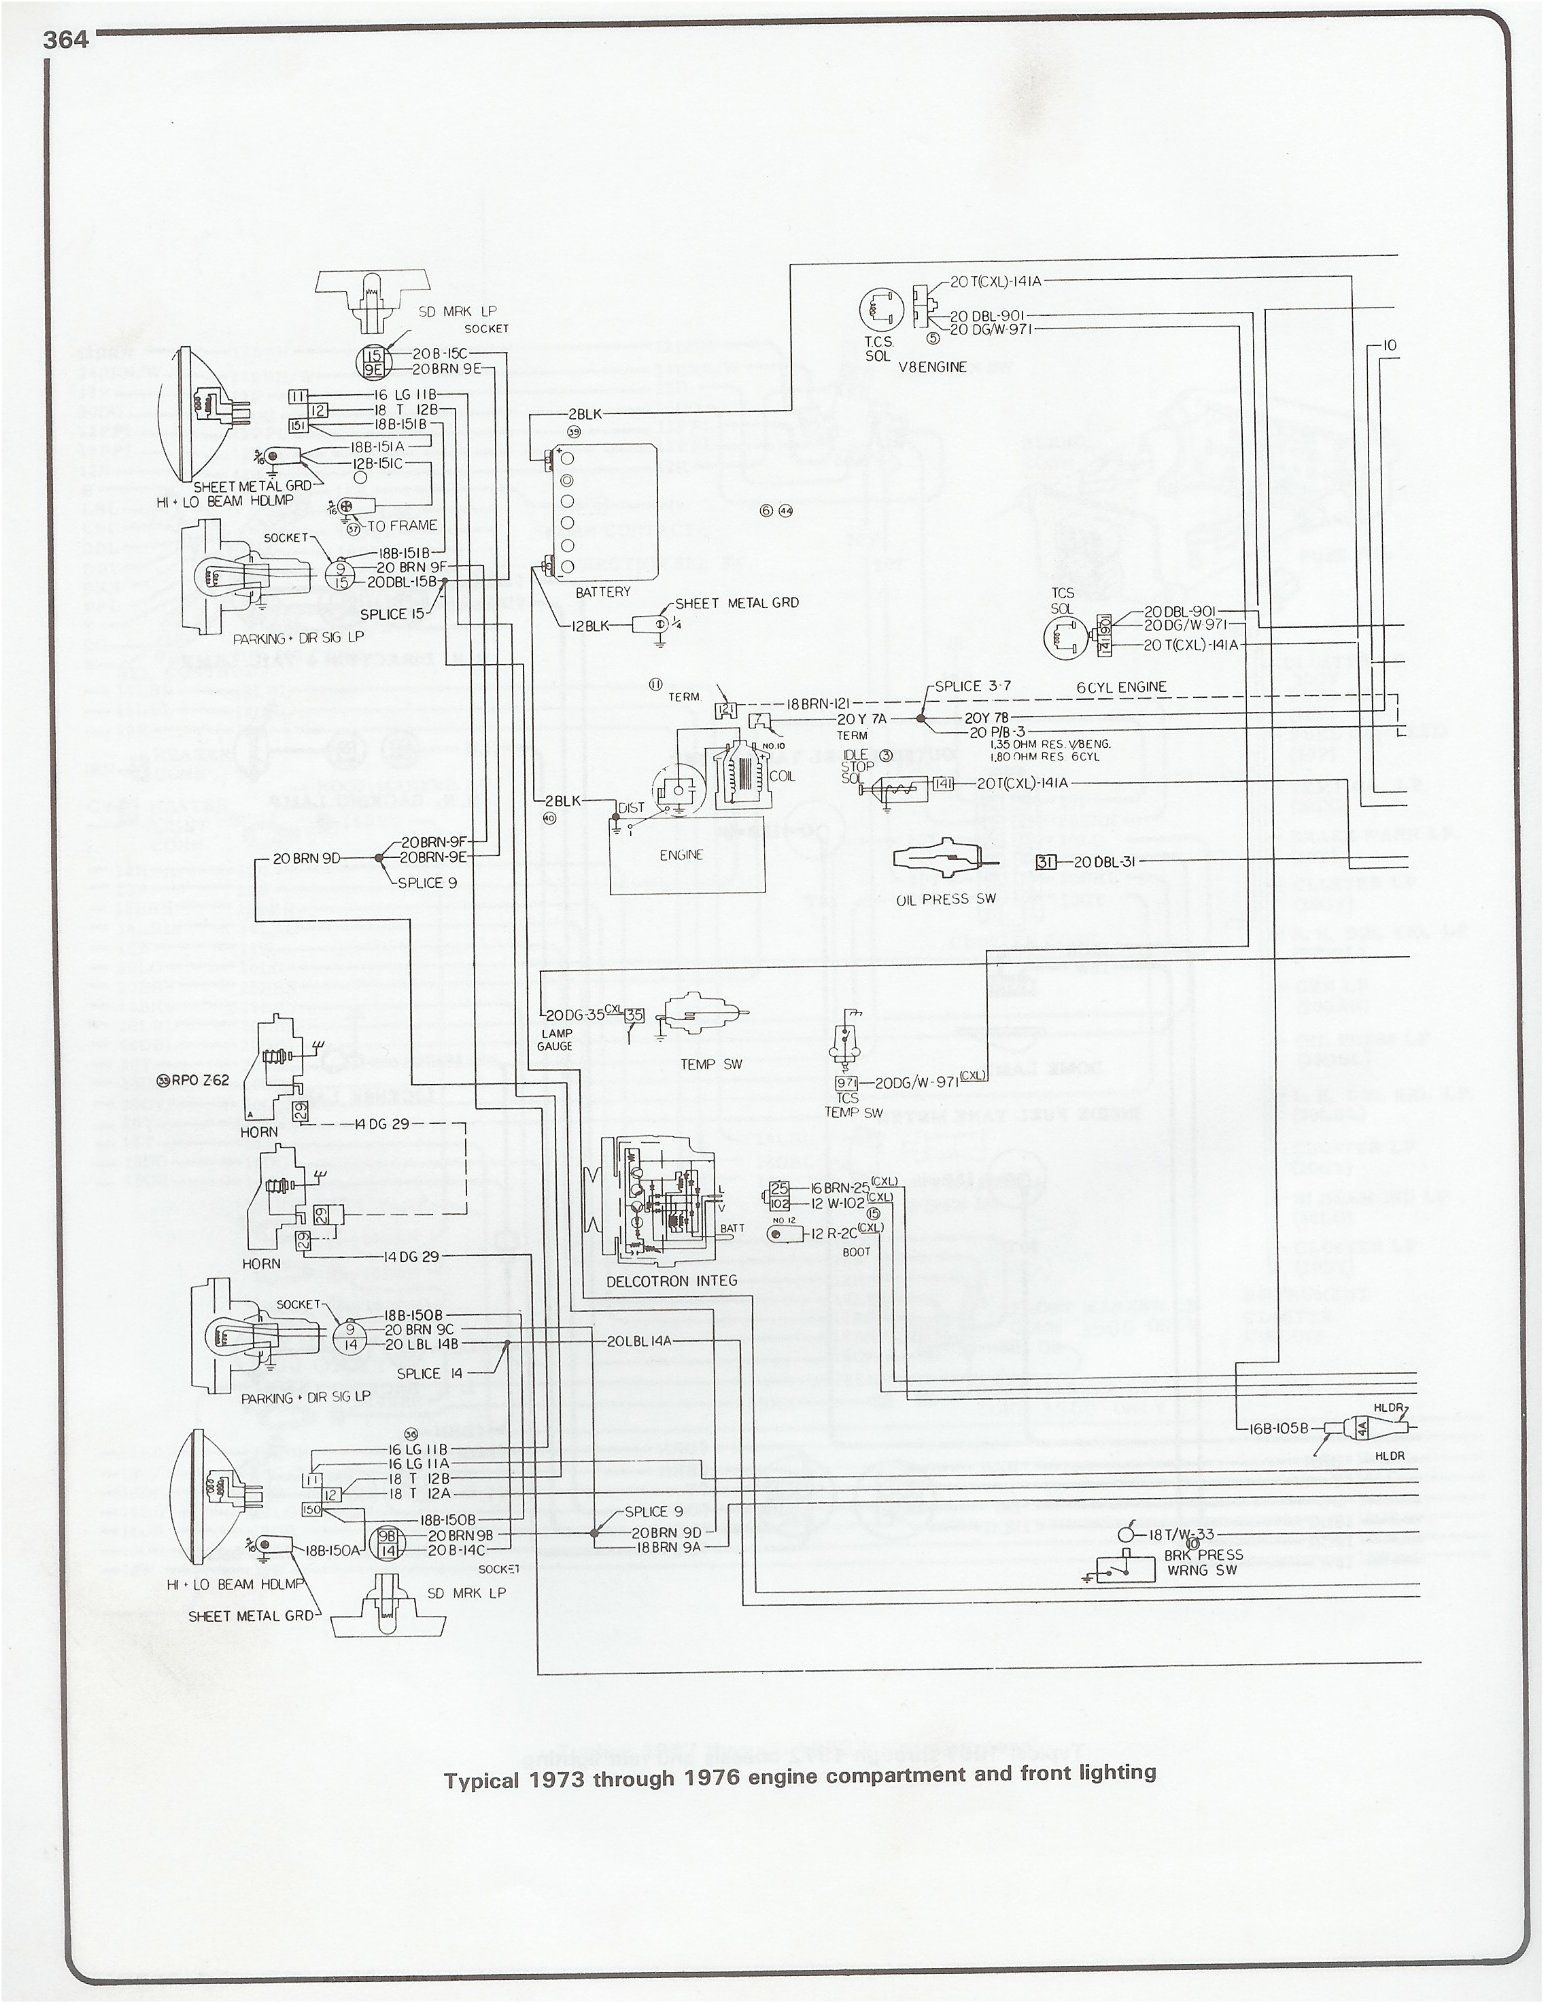 hight resolution of 73 chevy c10 fuse box wiring diagram mega 73 chevy c10 fuse box